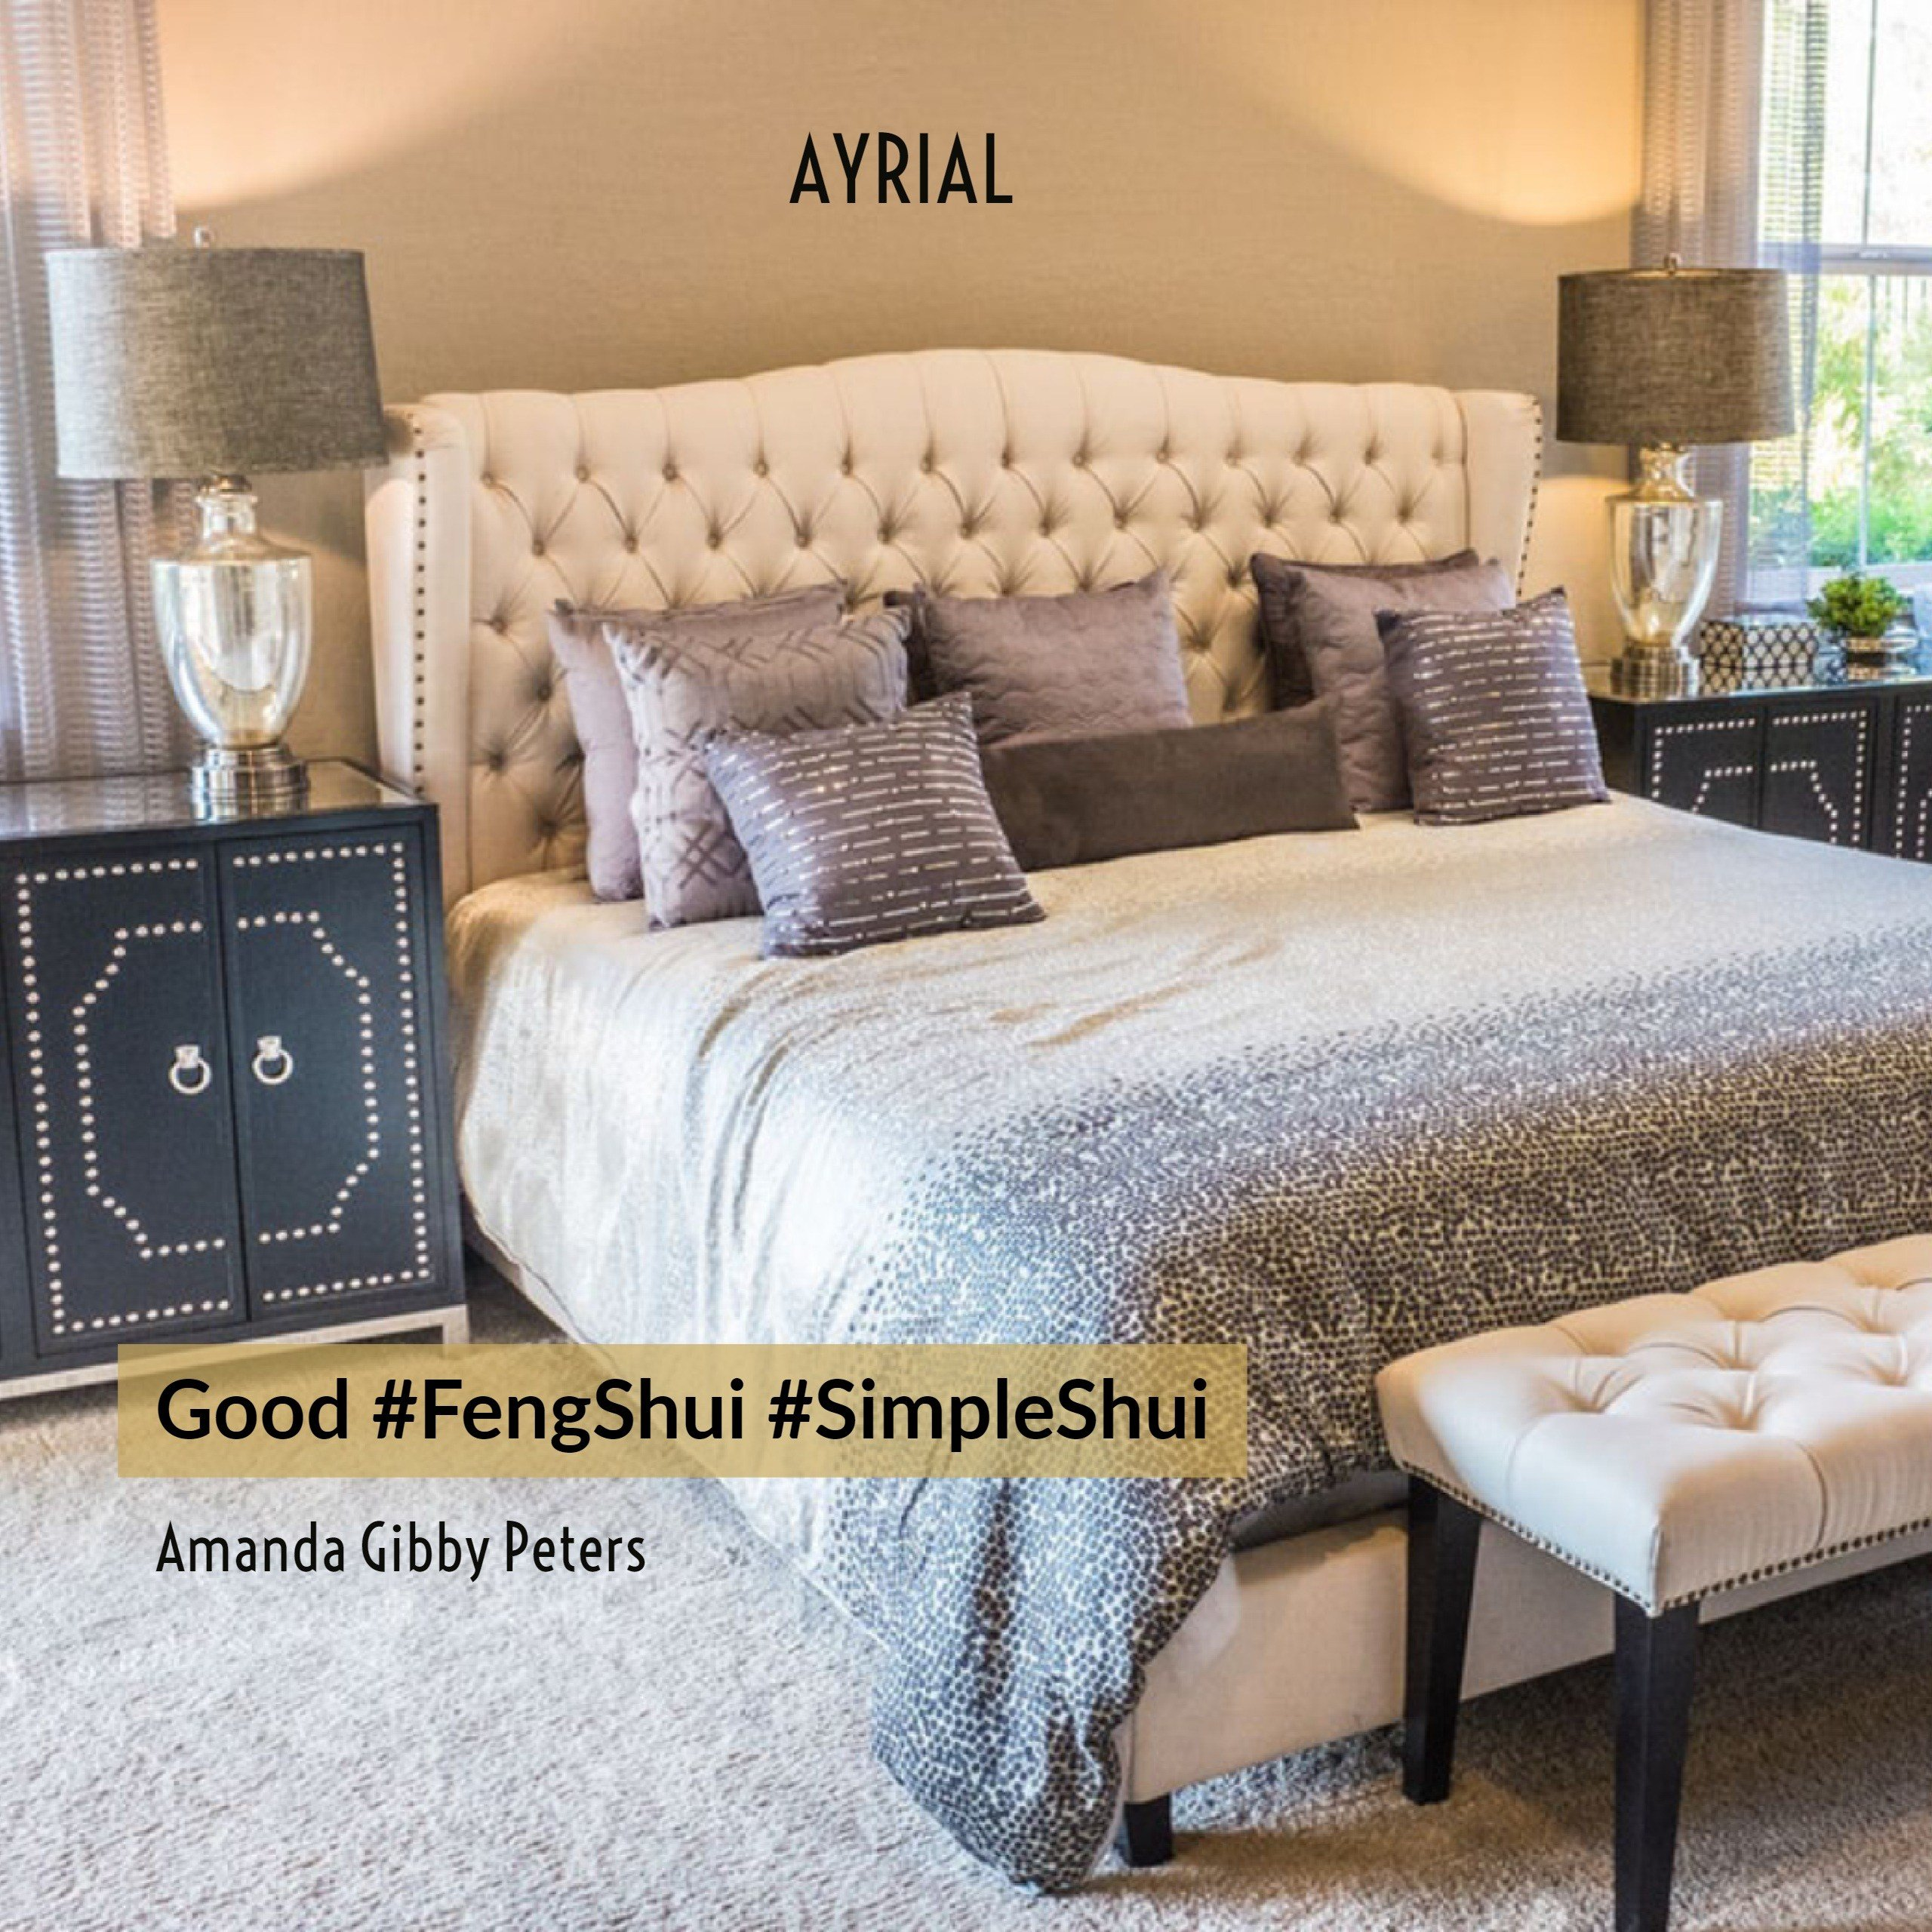 Best Ayrial – Simple Shui – Feng Shui Bedroom – Ayrial Association With Pictures